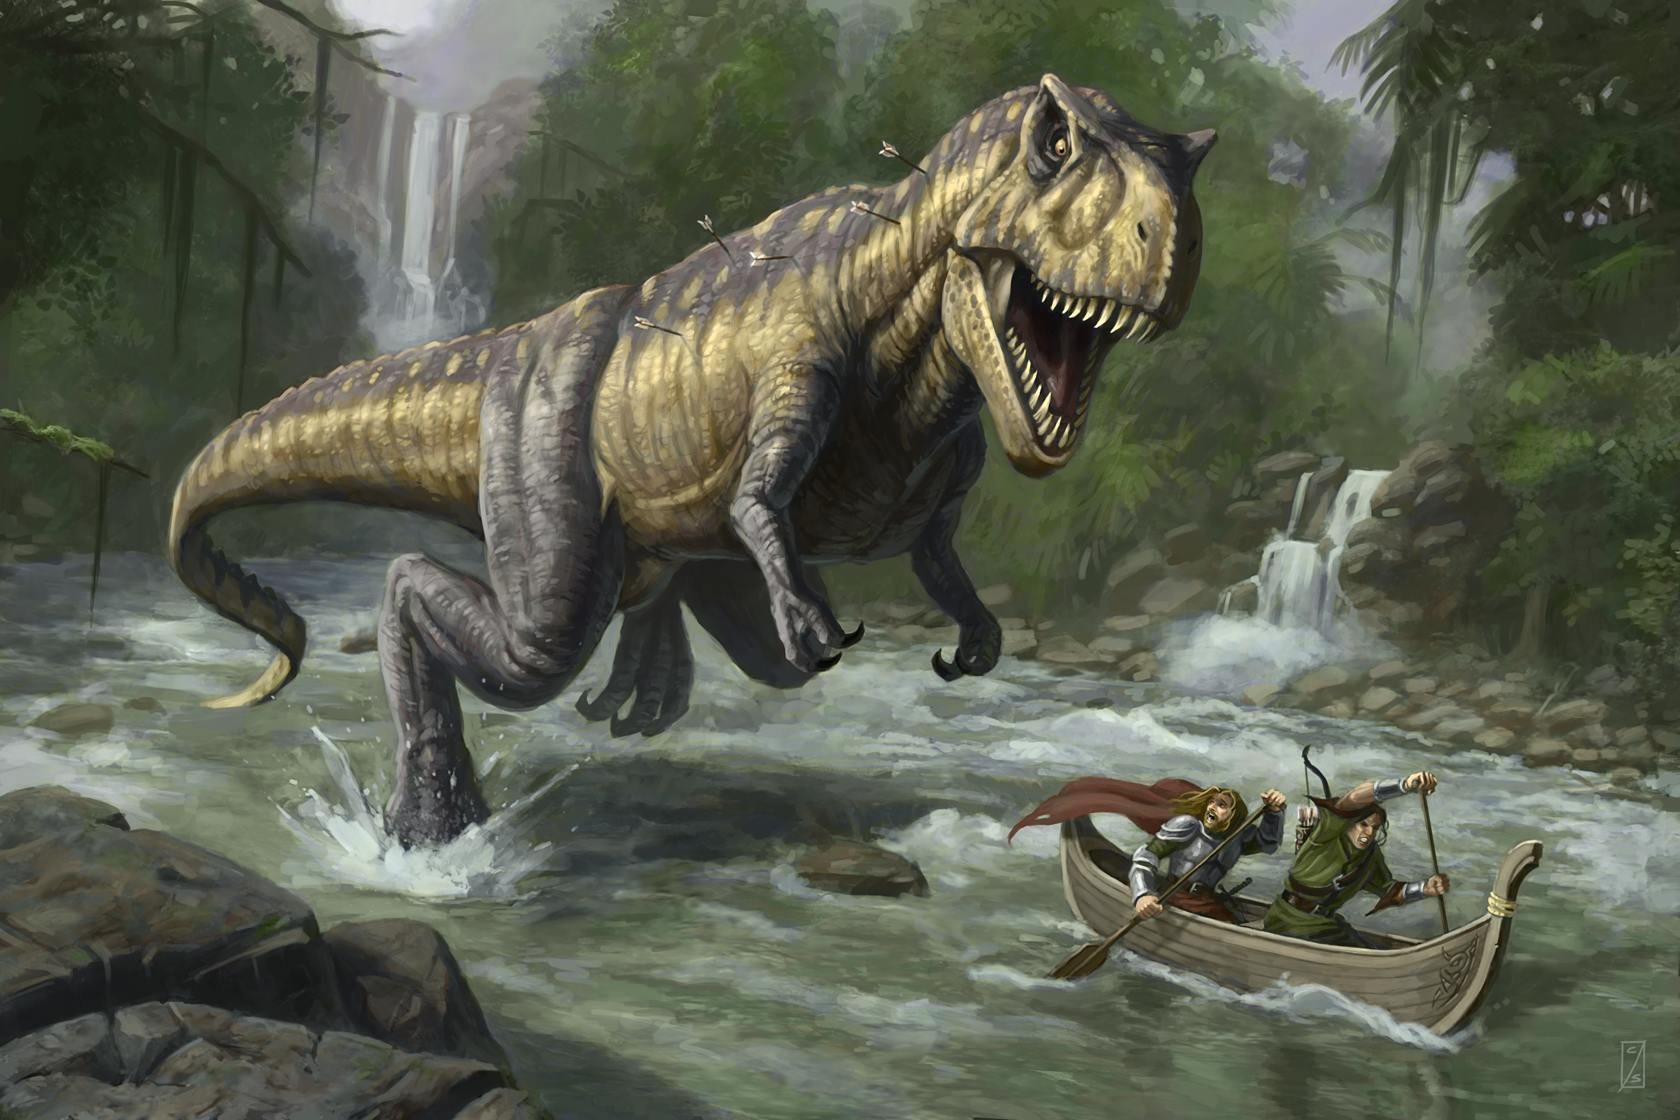 22513 download wallpaper Animals, Rivers, Fantasy, Boats, Dinosaurs screensavers and pictures for free